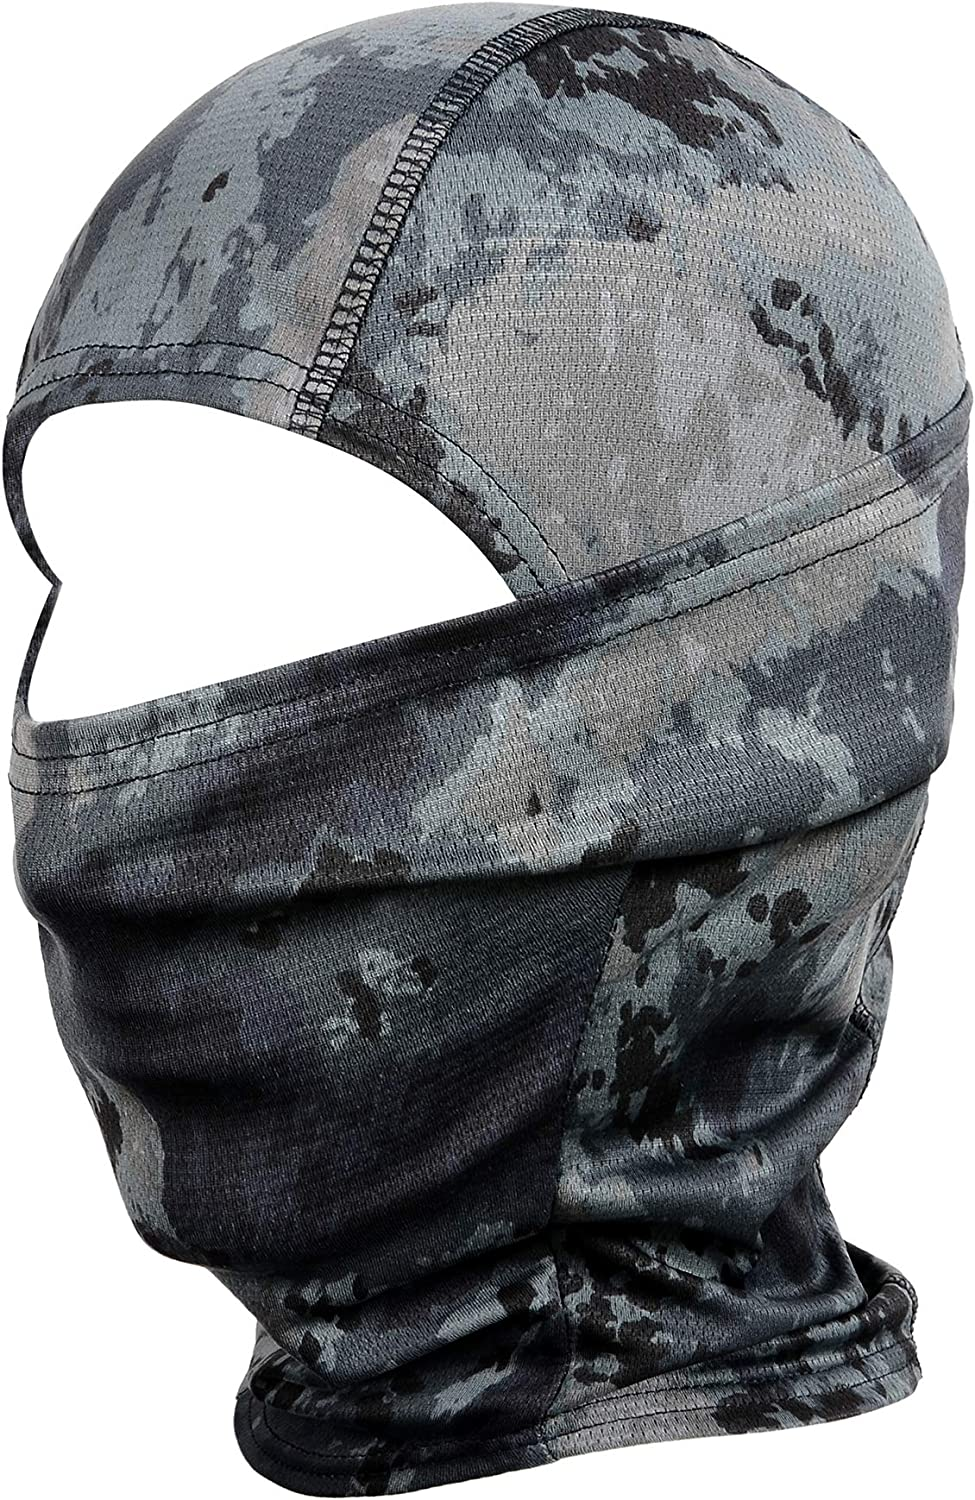 WTACTFUL Camouflage Balaclava Hood Ninja Outdoor Cycling Motorcycle Hunting Military Tactical Helmet Liner Gear Full Face Mask